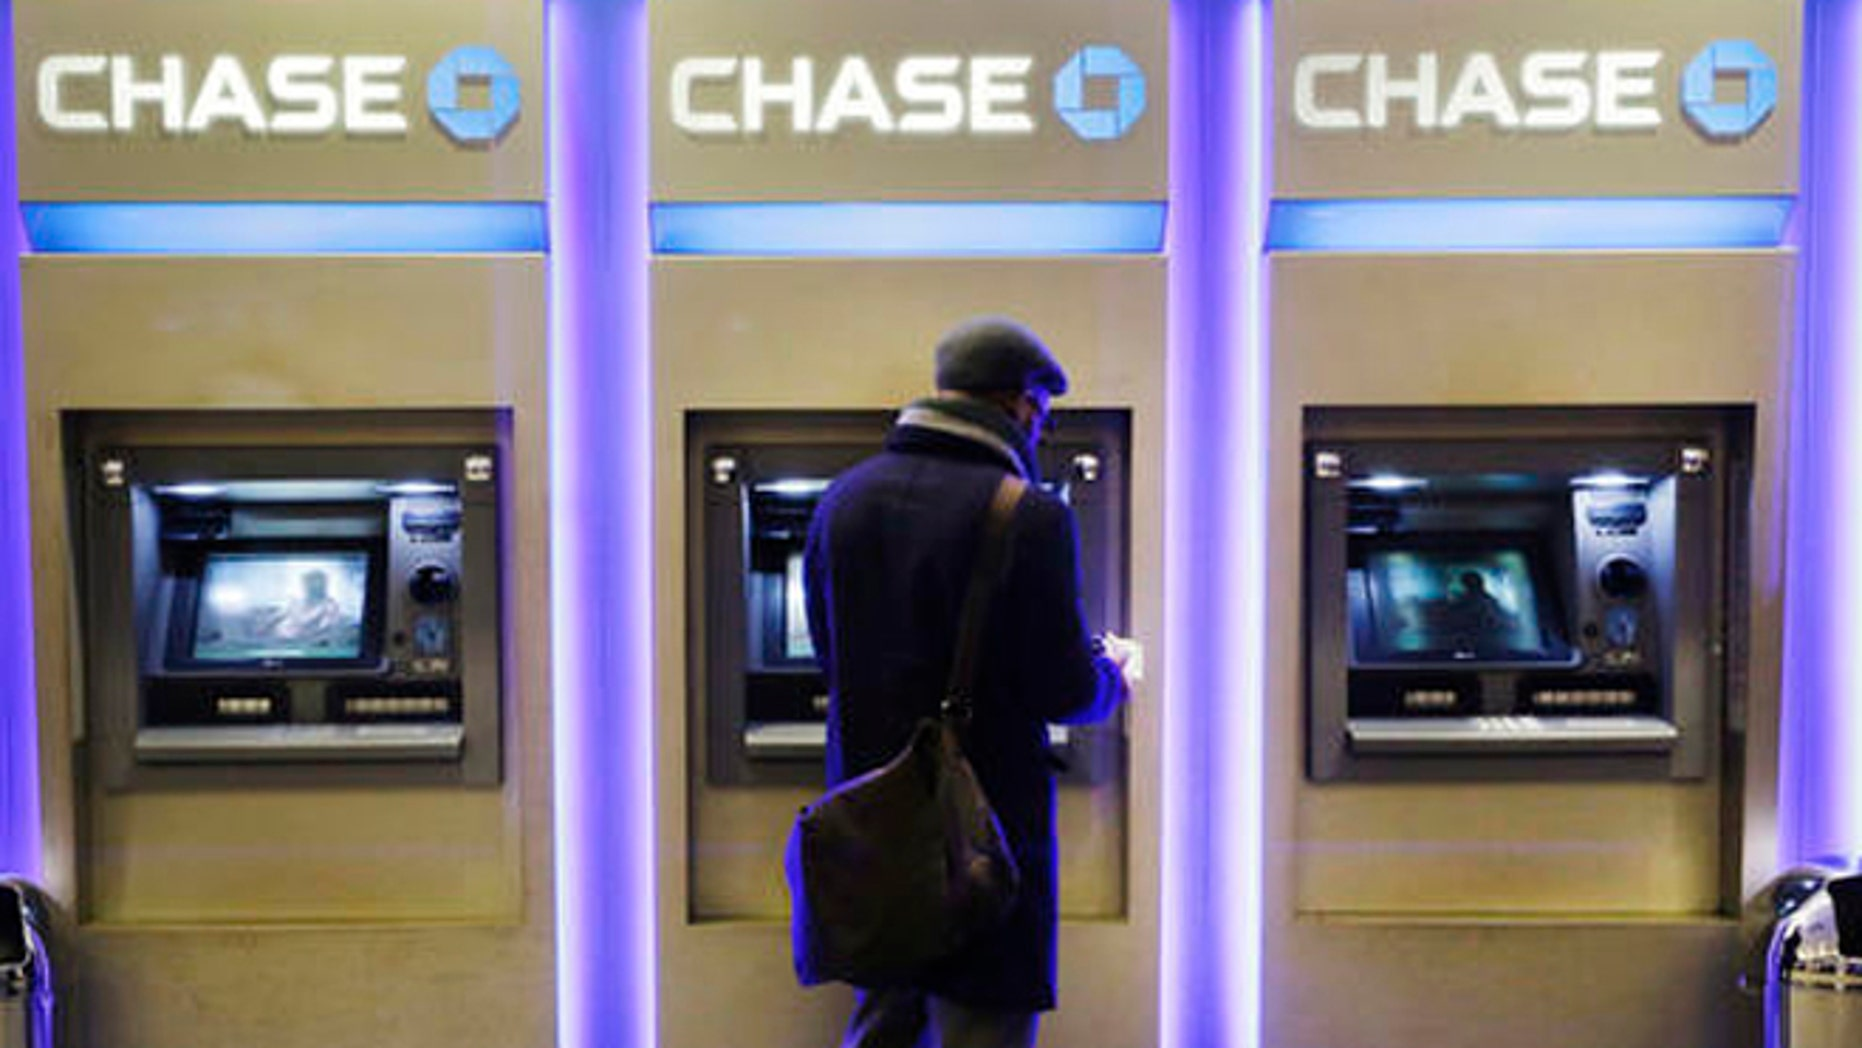 FILE - In this Wednesday, Jan. 14, 2015, file photo, a customer uses an ATM at a branch of Chase Bank, in New York. Fewer Americans are without access to a checking or savings account, according to a survey released Thursday, Oct. 20, 2016, by federal regulators, a sign that the improving economy is helping lift the nation's poorest households. (AP Photo/Mark Lennihan, File)